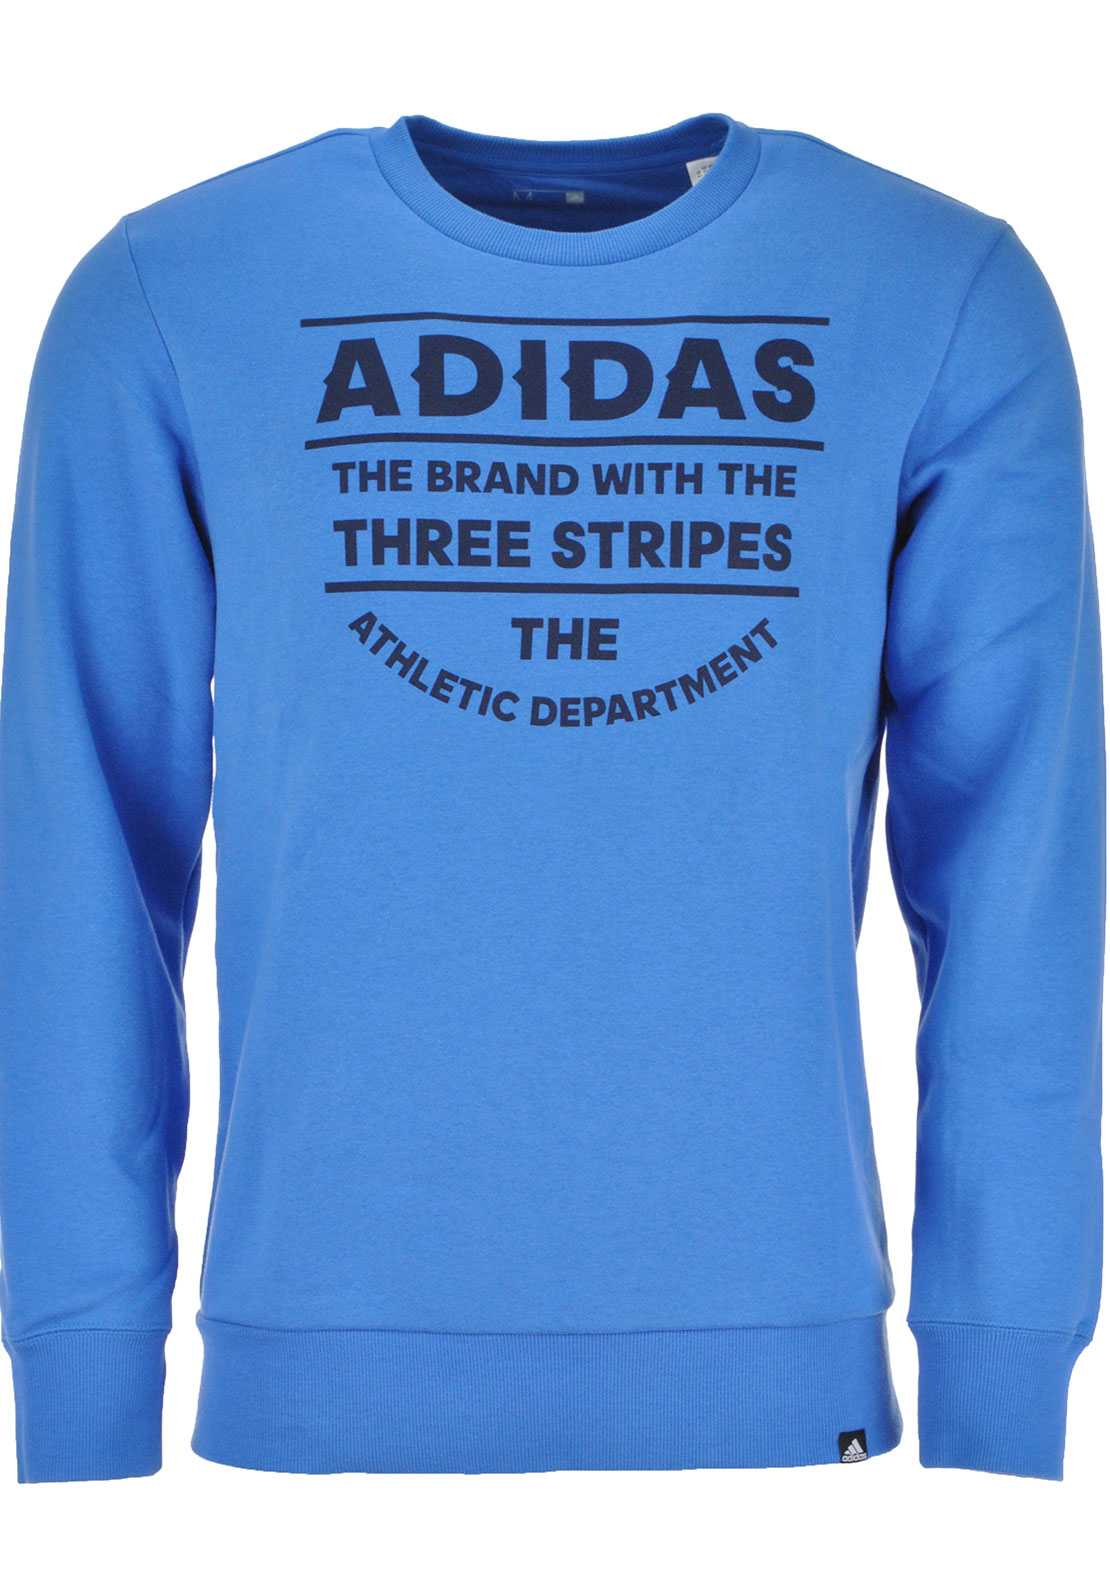 Adidas Mens Athletic D Crew Neck Sweatshirt Jumper, Super Blue